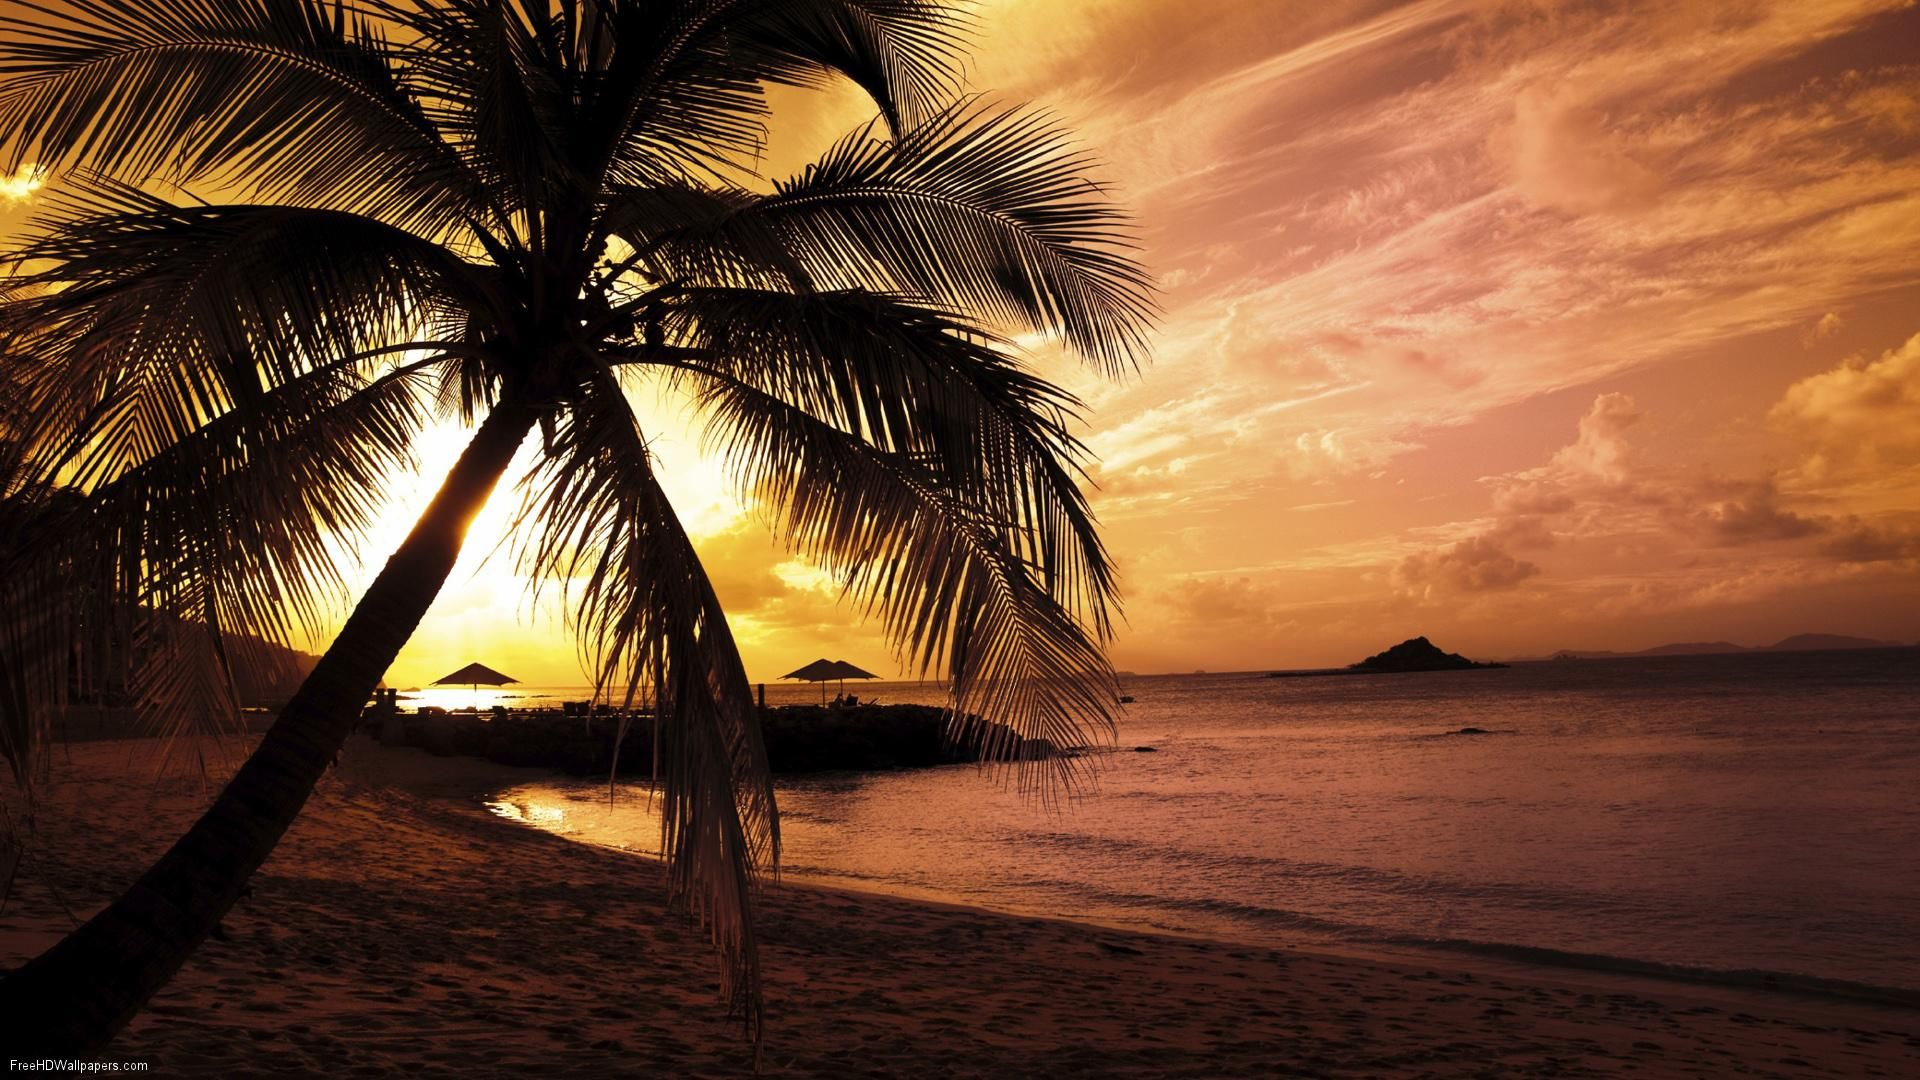 beach scenes wallpapers beach scenes paradise 1920x1080 343975 beach